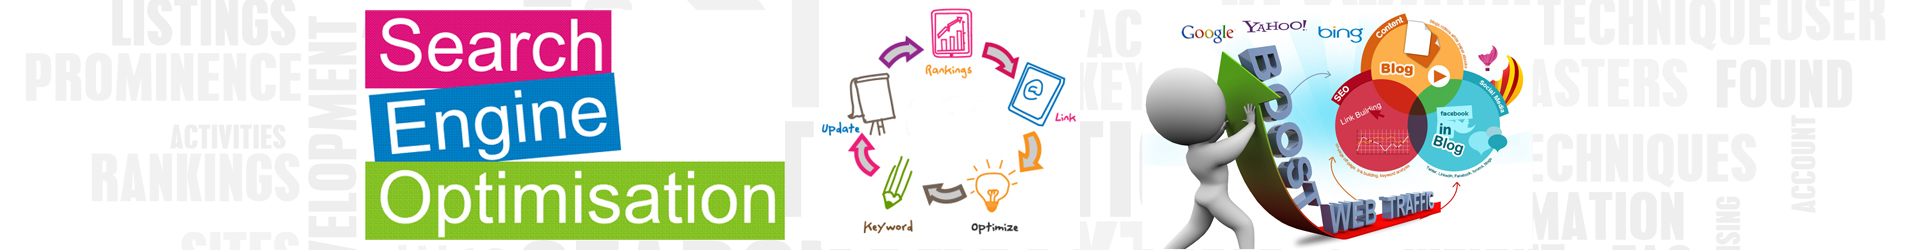 Social Media Marketing strategy, social media optimization services